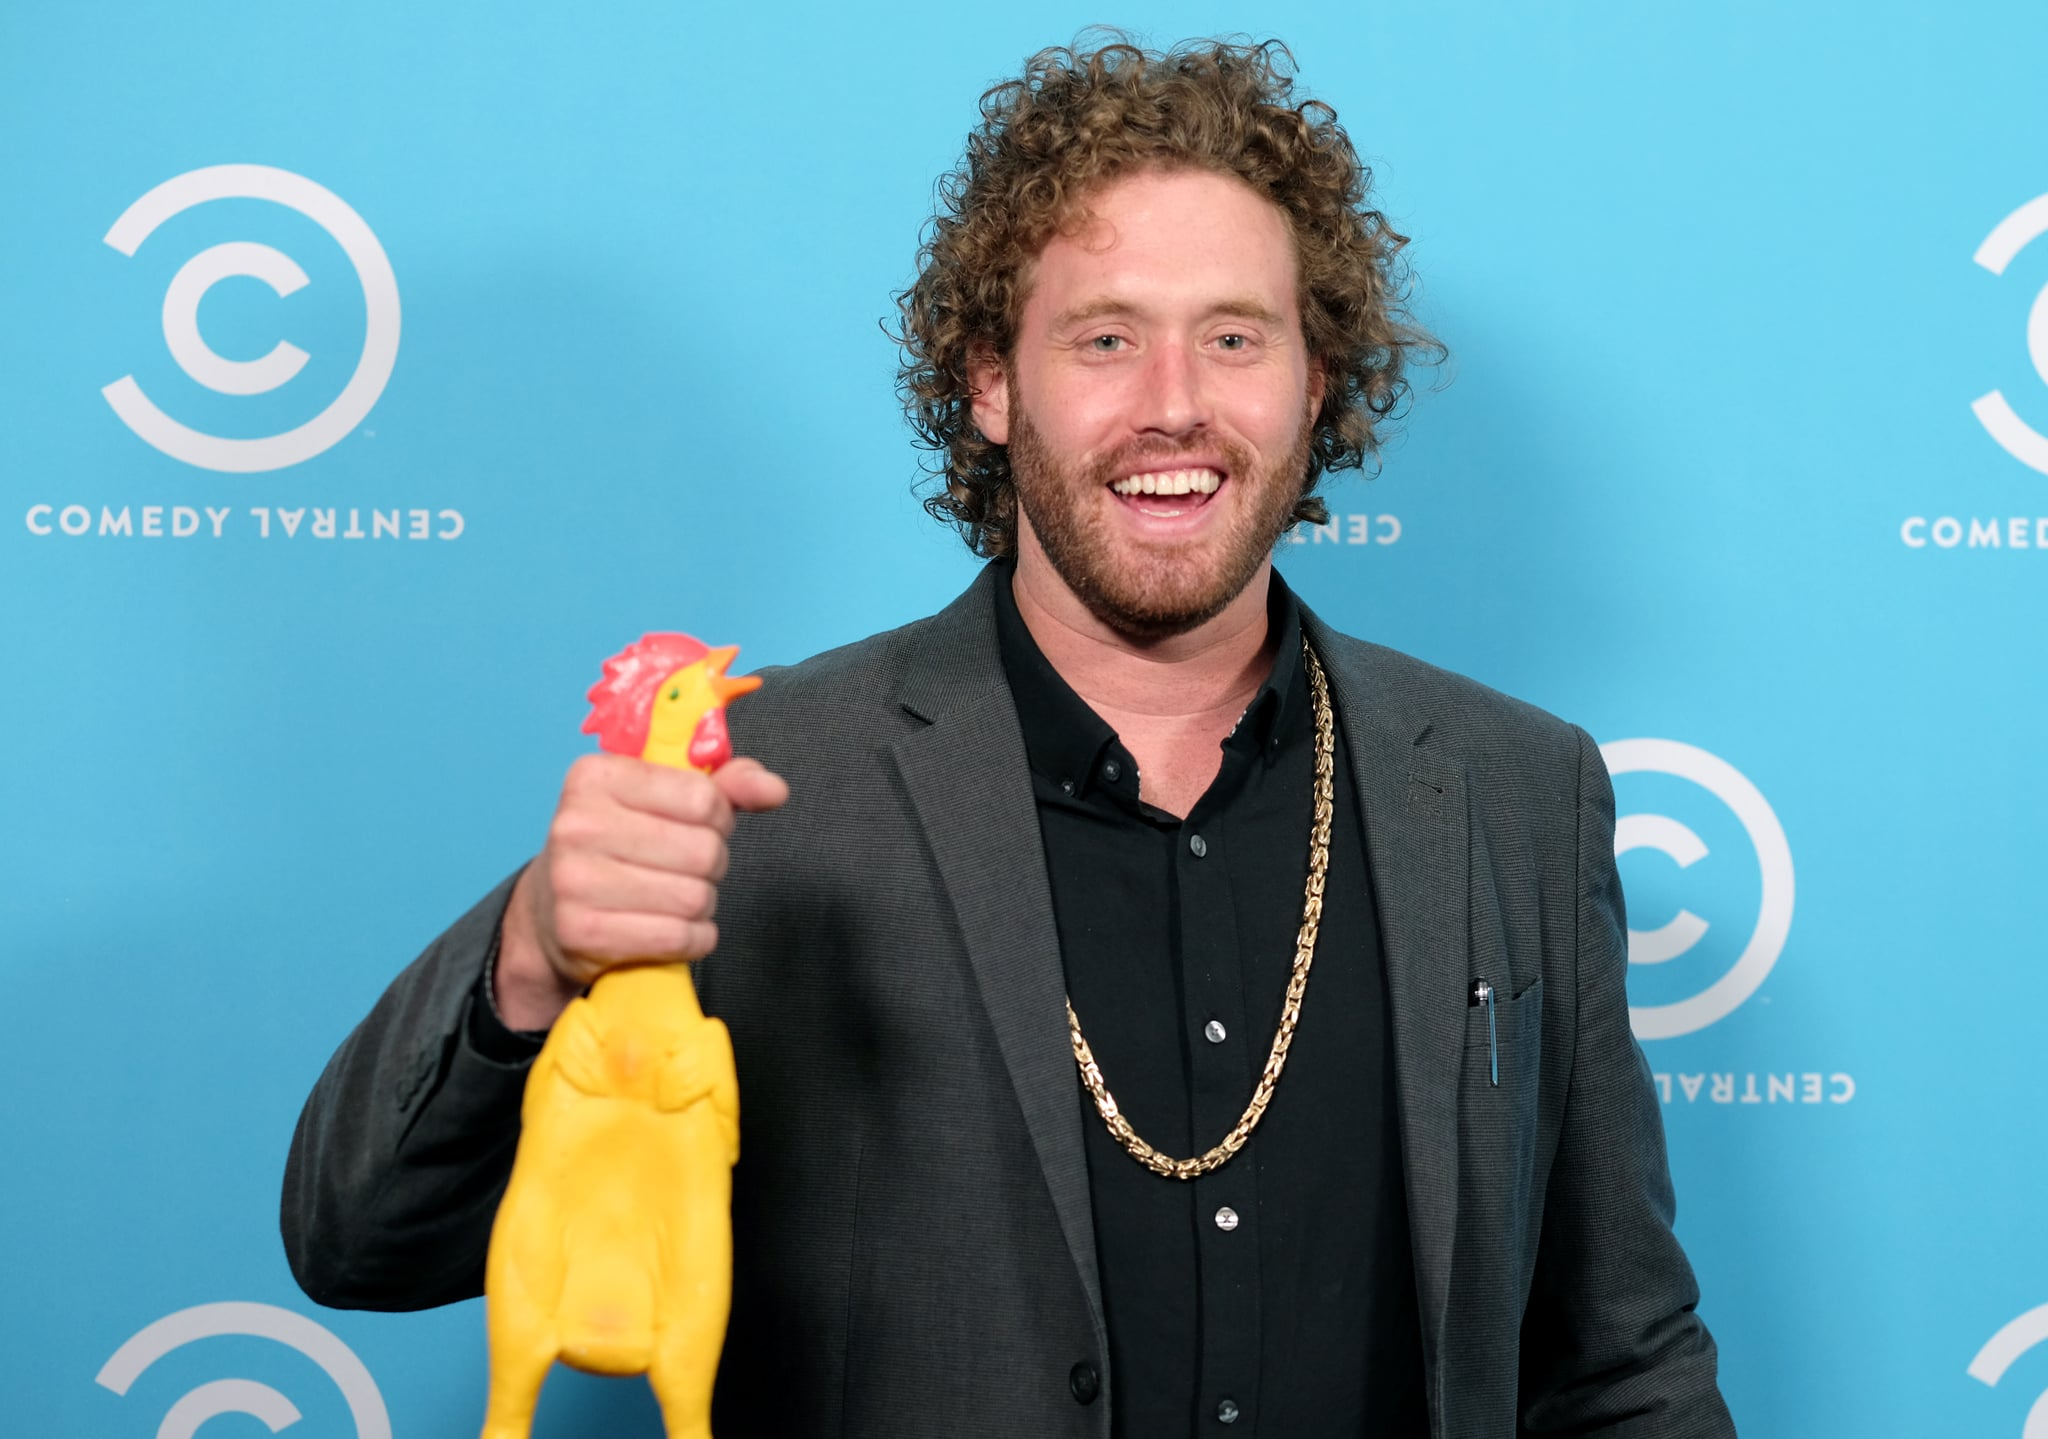 LOS ANGELES, CA - MAY 23:  Comedian T.J. Miller of 'The Gorburger Show'  attends Comedy Central's L.A. Press Day at Viacom Building on May 23, 2017 in Los Angeles, California.  (Photo by Matthew Simmons/Getty Images)